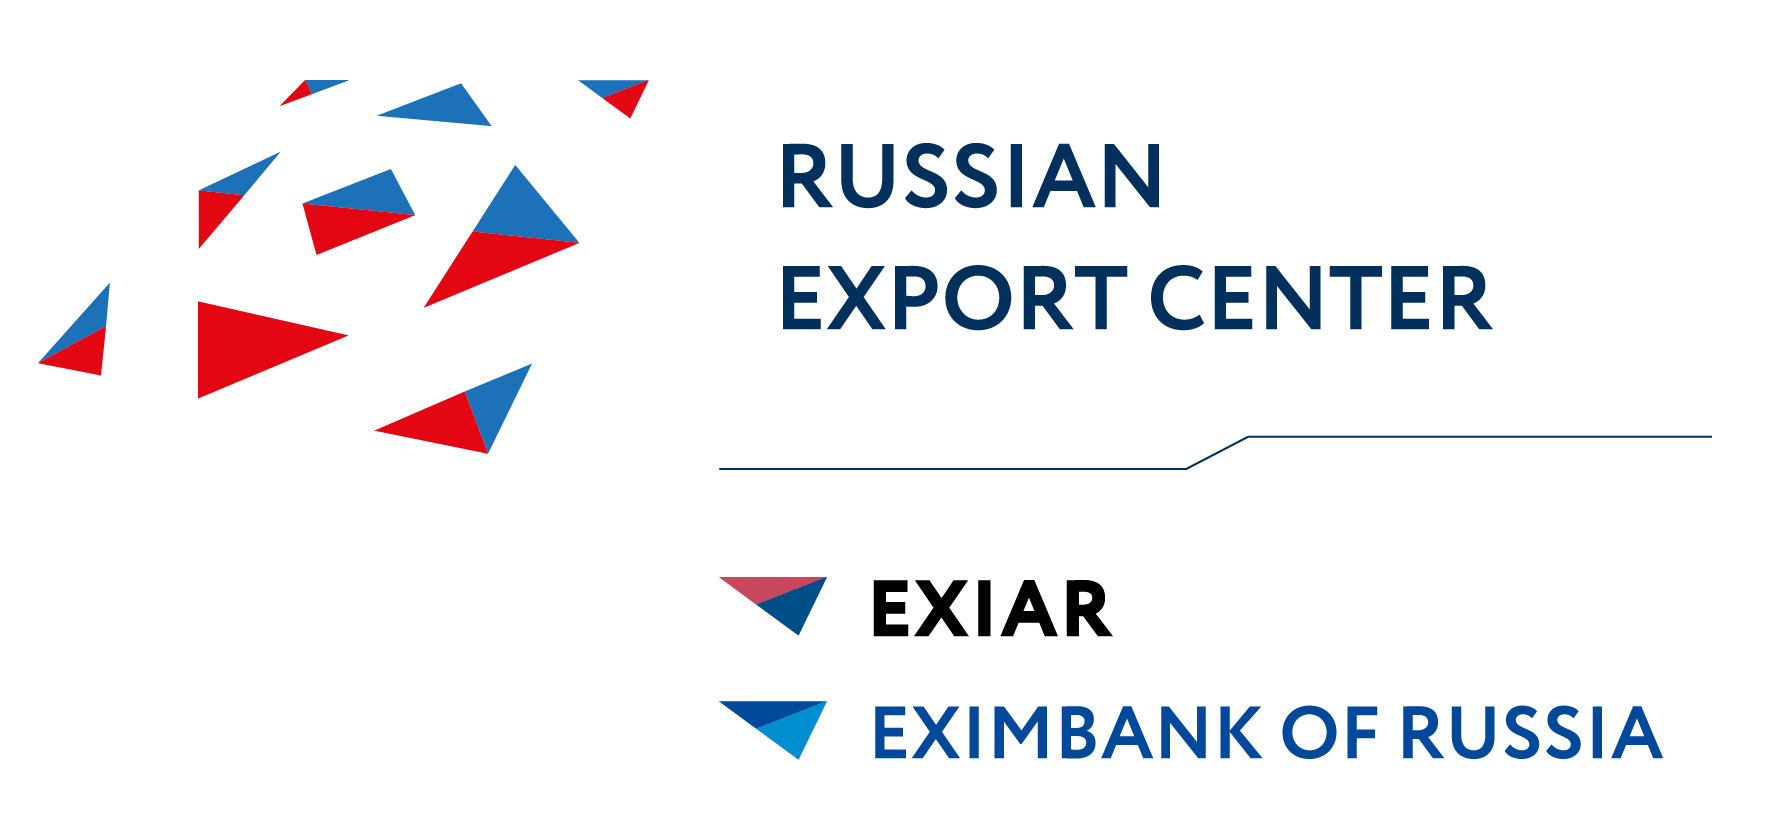 Russian Export Center